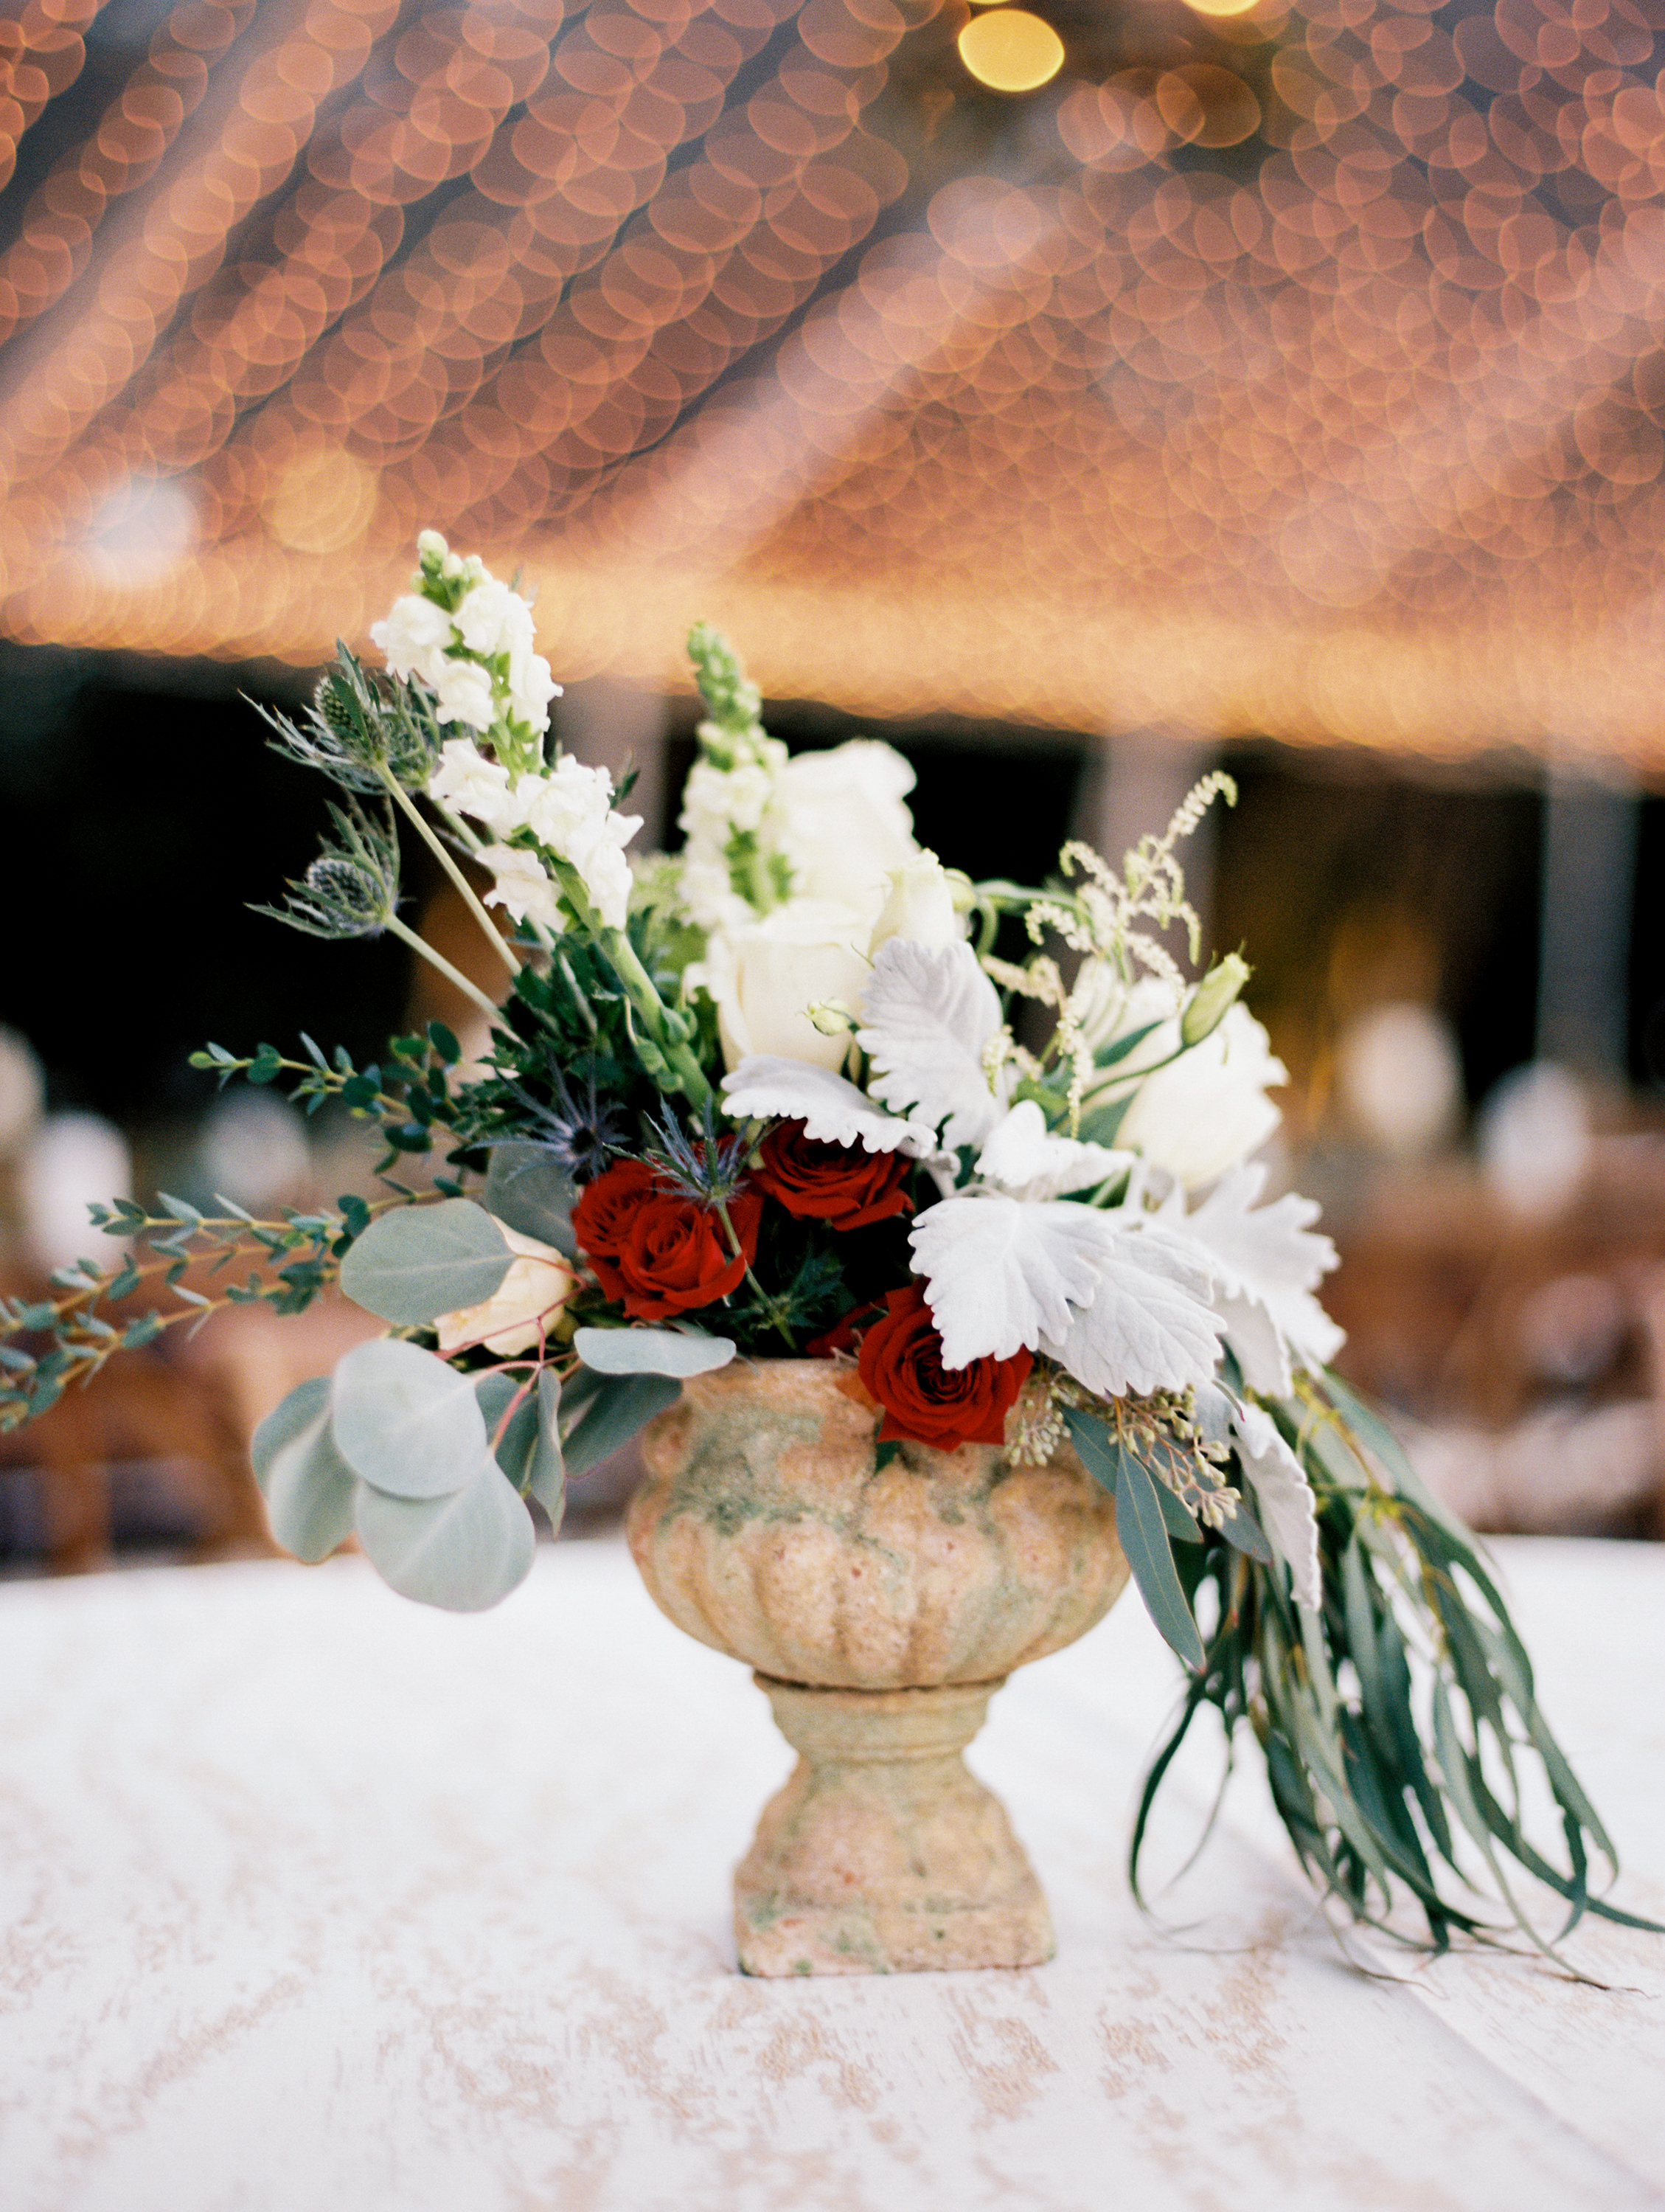 Southern Fete, Southern Wedding, Peregrin's Florist